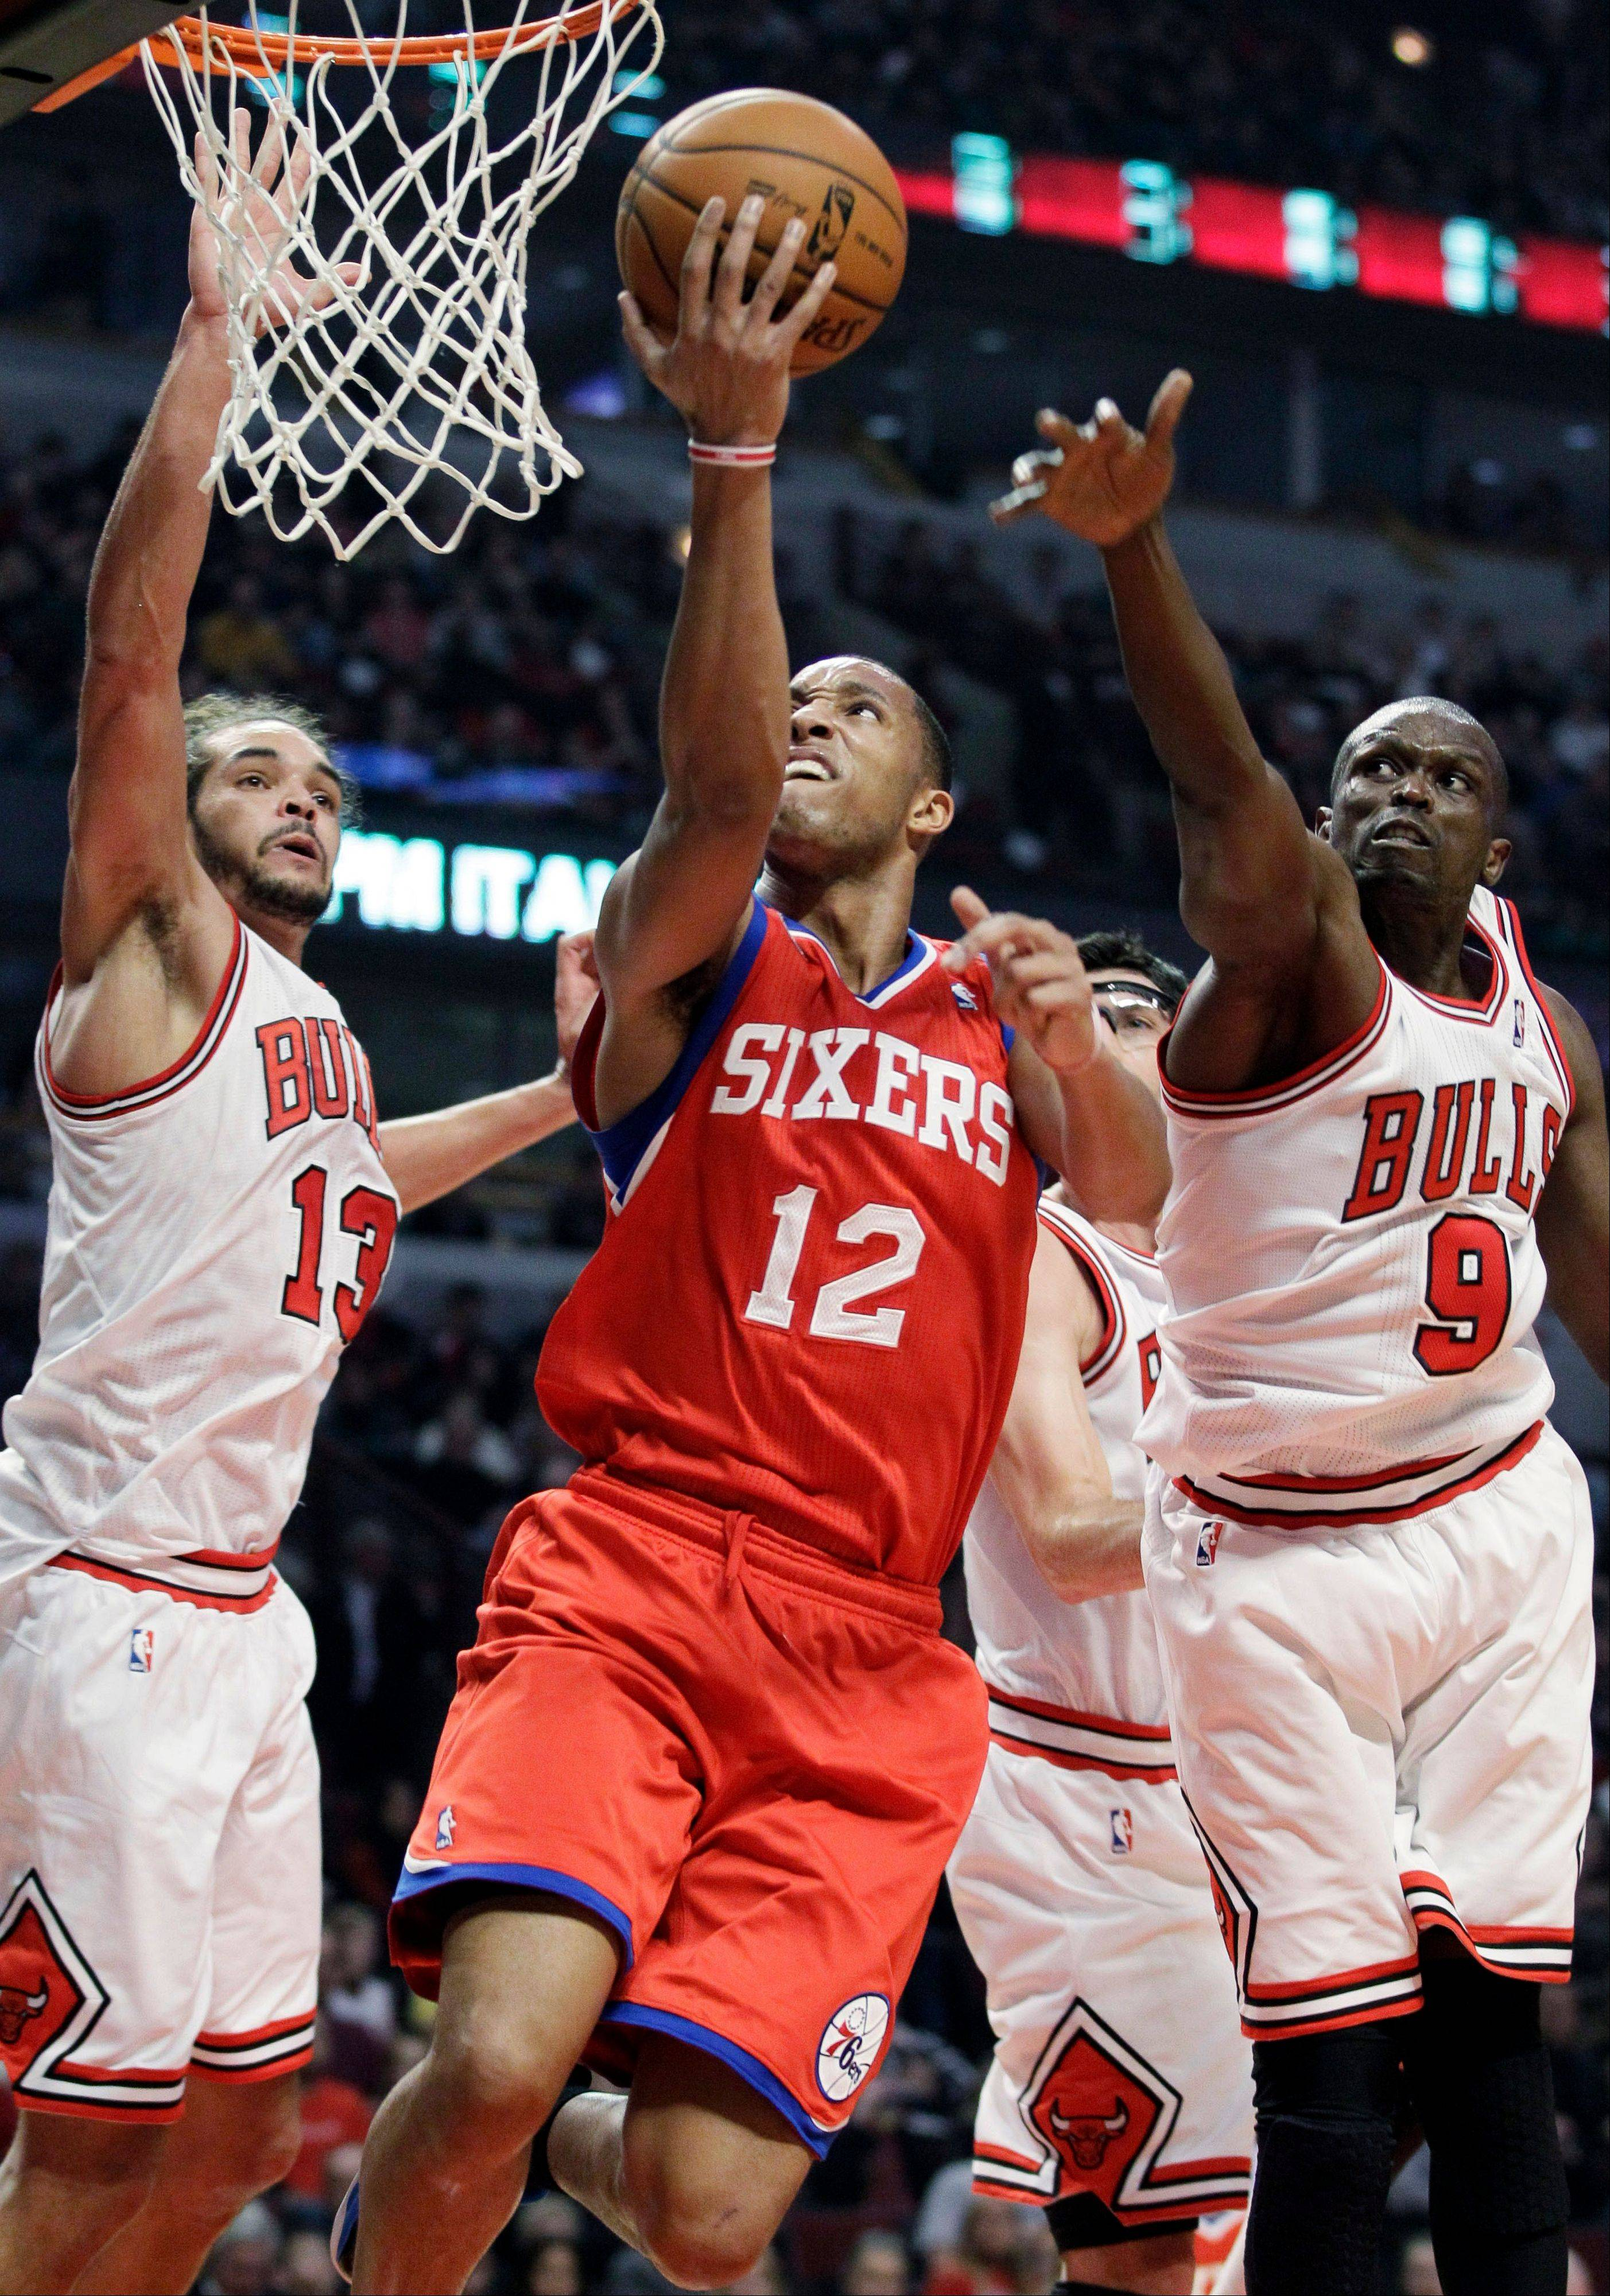 Philadelphia 76ers forward Evan Turner, center, shoots against Bulls center Joakim Noah (13) and forward Luol Deng during the first half of an NBA basketball game in Chicago on Saturday, Dec. 1, 2012.